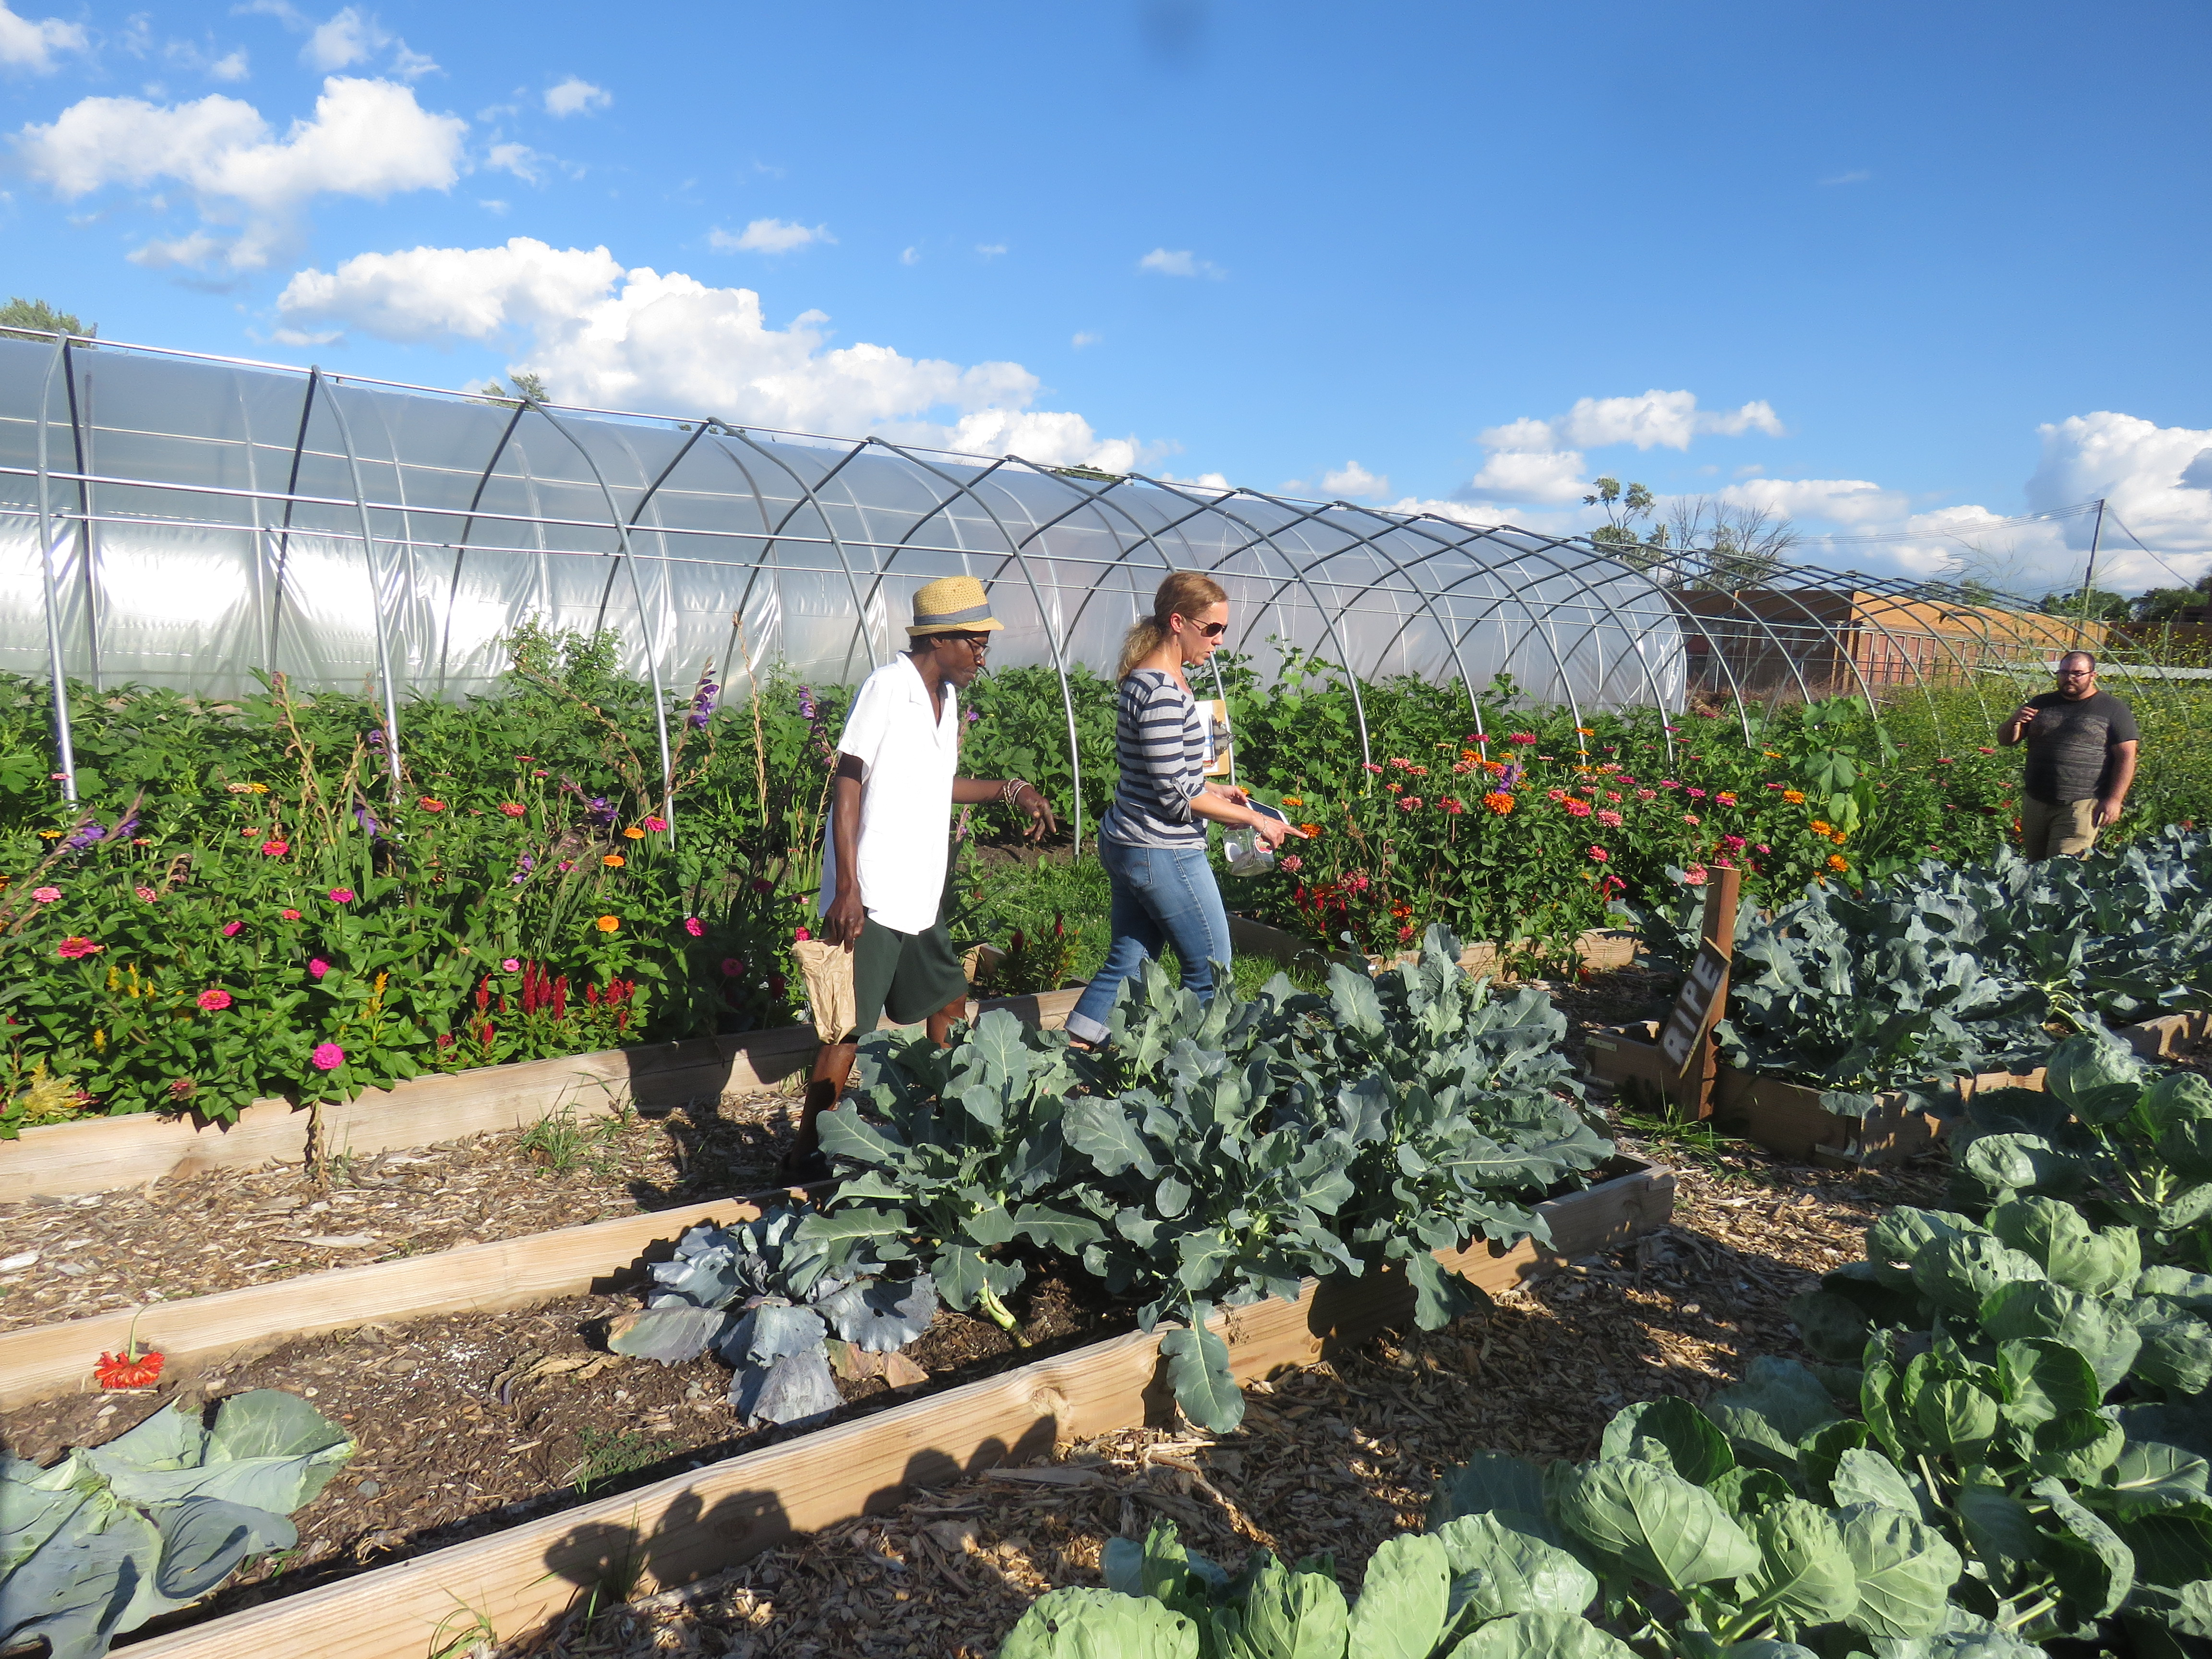 A man and woman walk through plots in a community garden. The sky above is blue with puffy clouds.